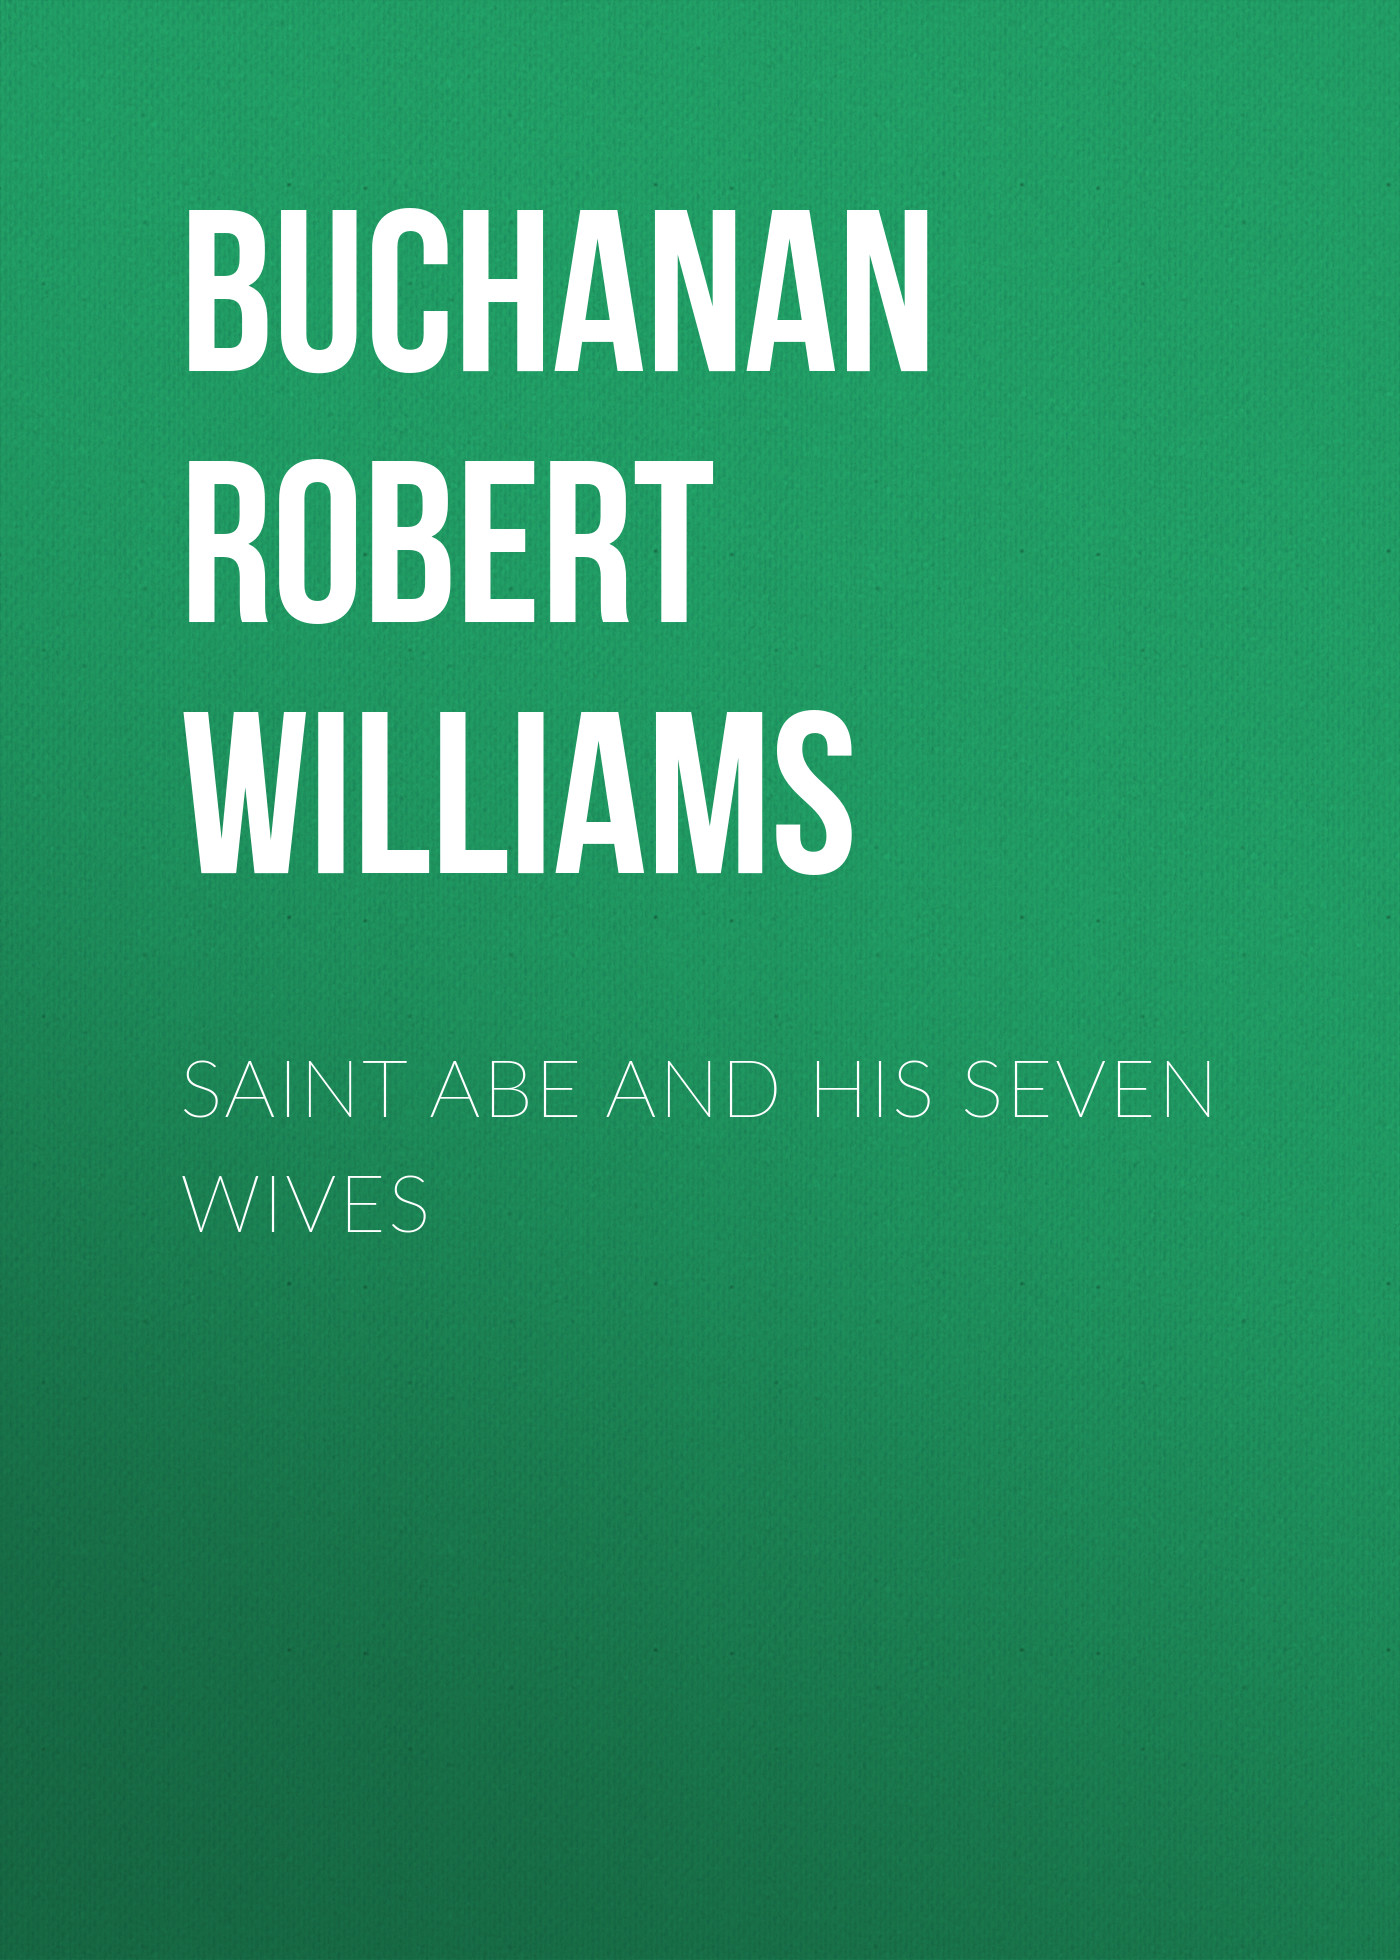 Buchanan Robert Williams Saint Abe and His Seven Wives buchanan robert williams saint abe and his seven wives